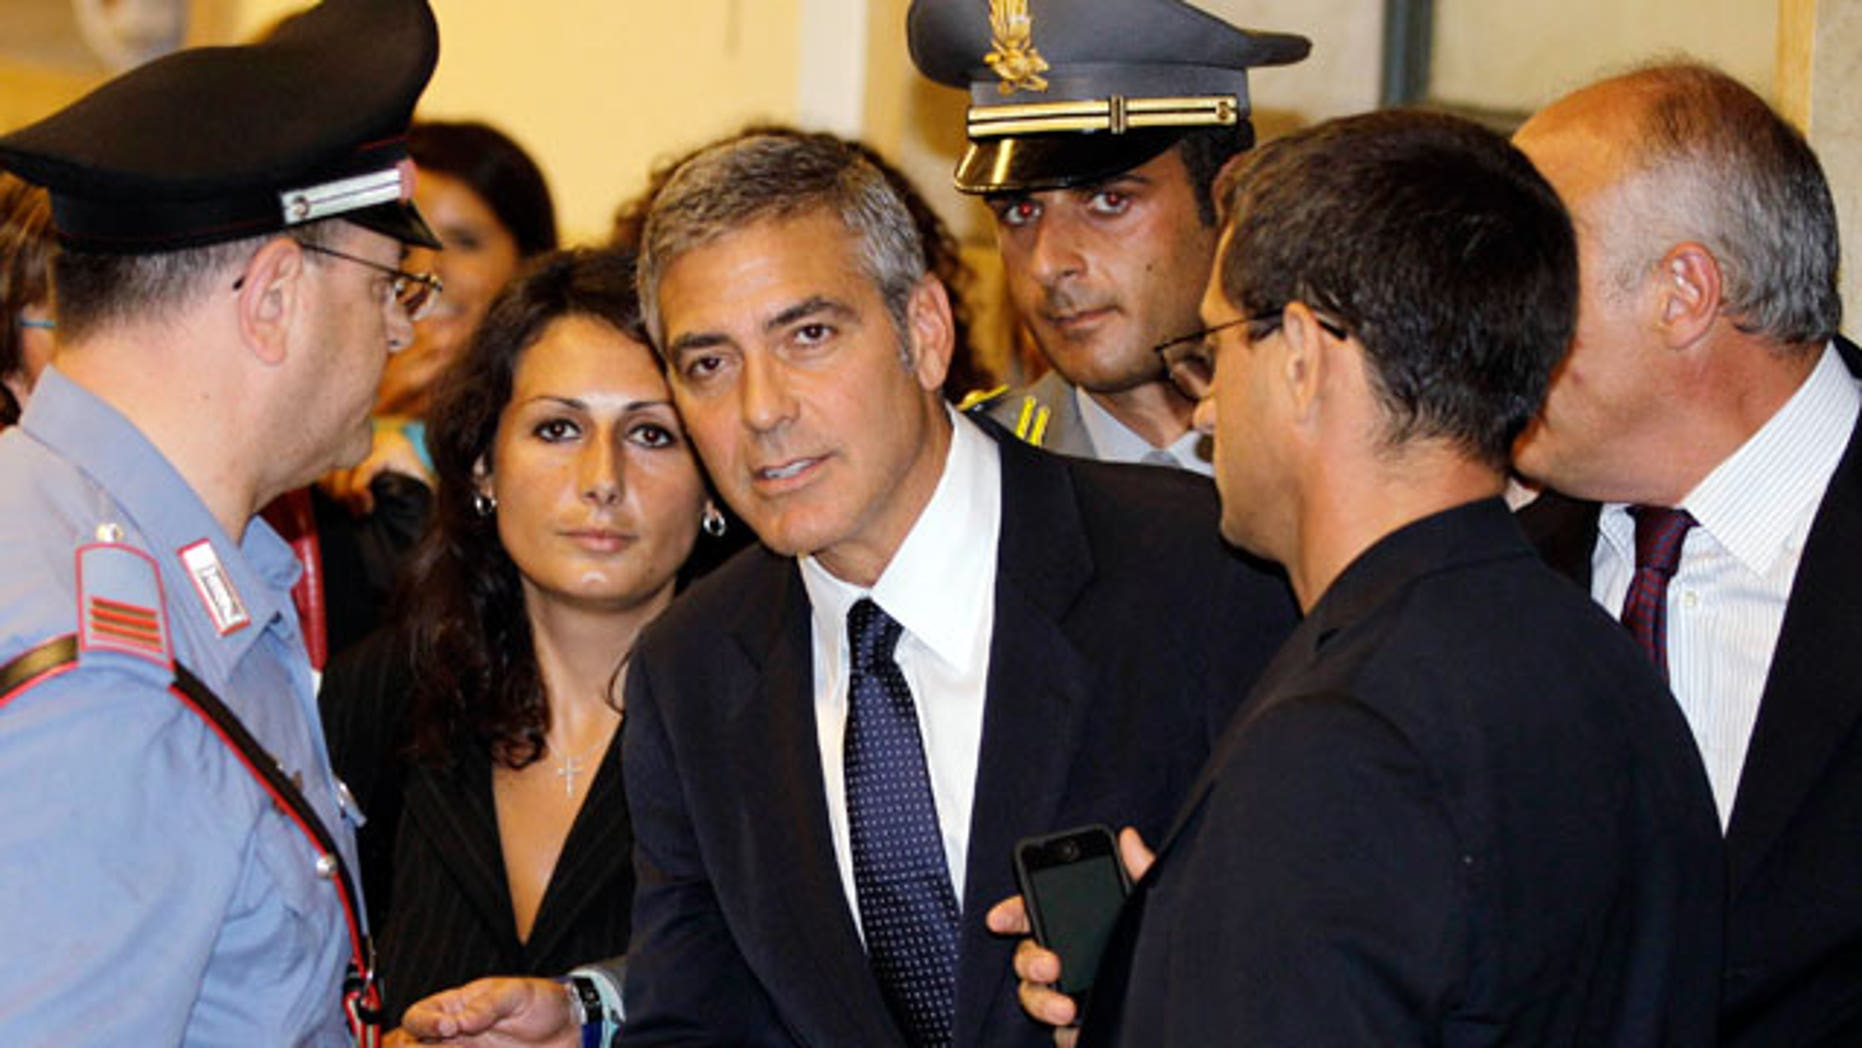 July 16: Actor George Clooney leaves a tribunal in Milan, Italy. Clooney appeared in court as a witness in a fraud trial against defendants charged with co opting his name for a line of clothing.